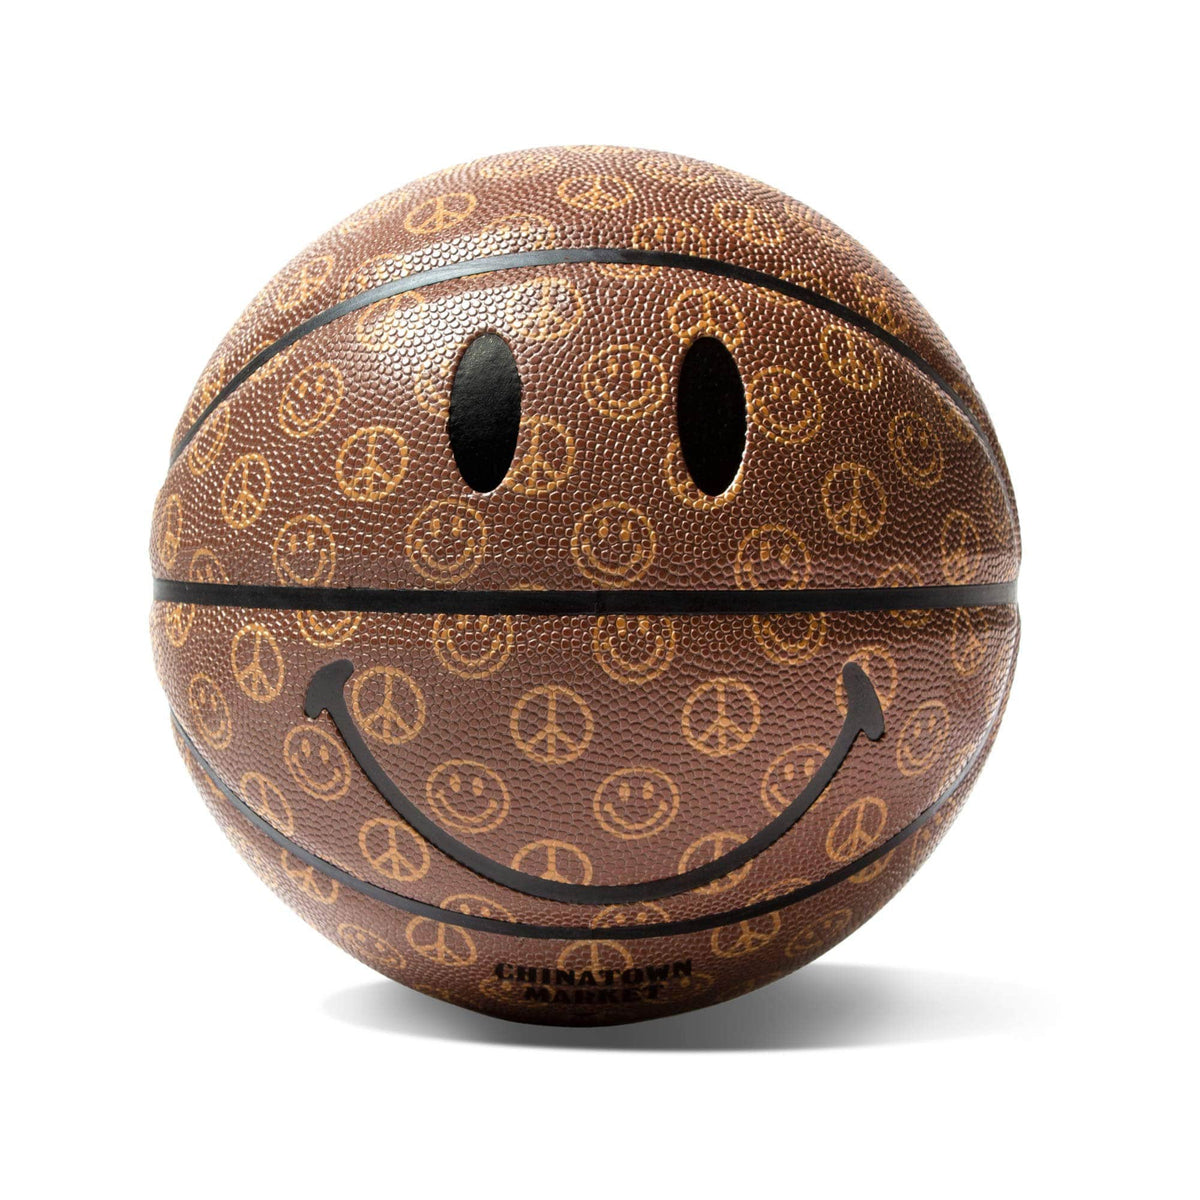 China Town Market Accessories Smiley Cabana Basketball